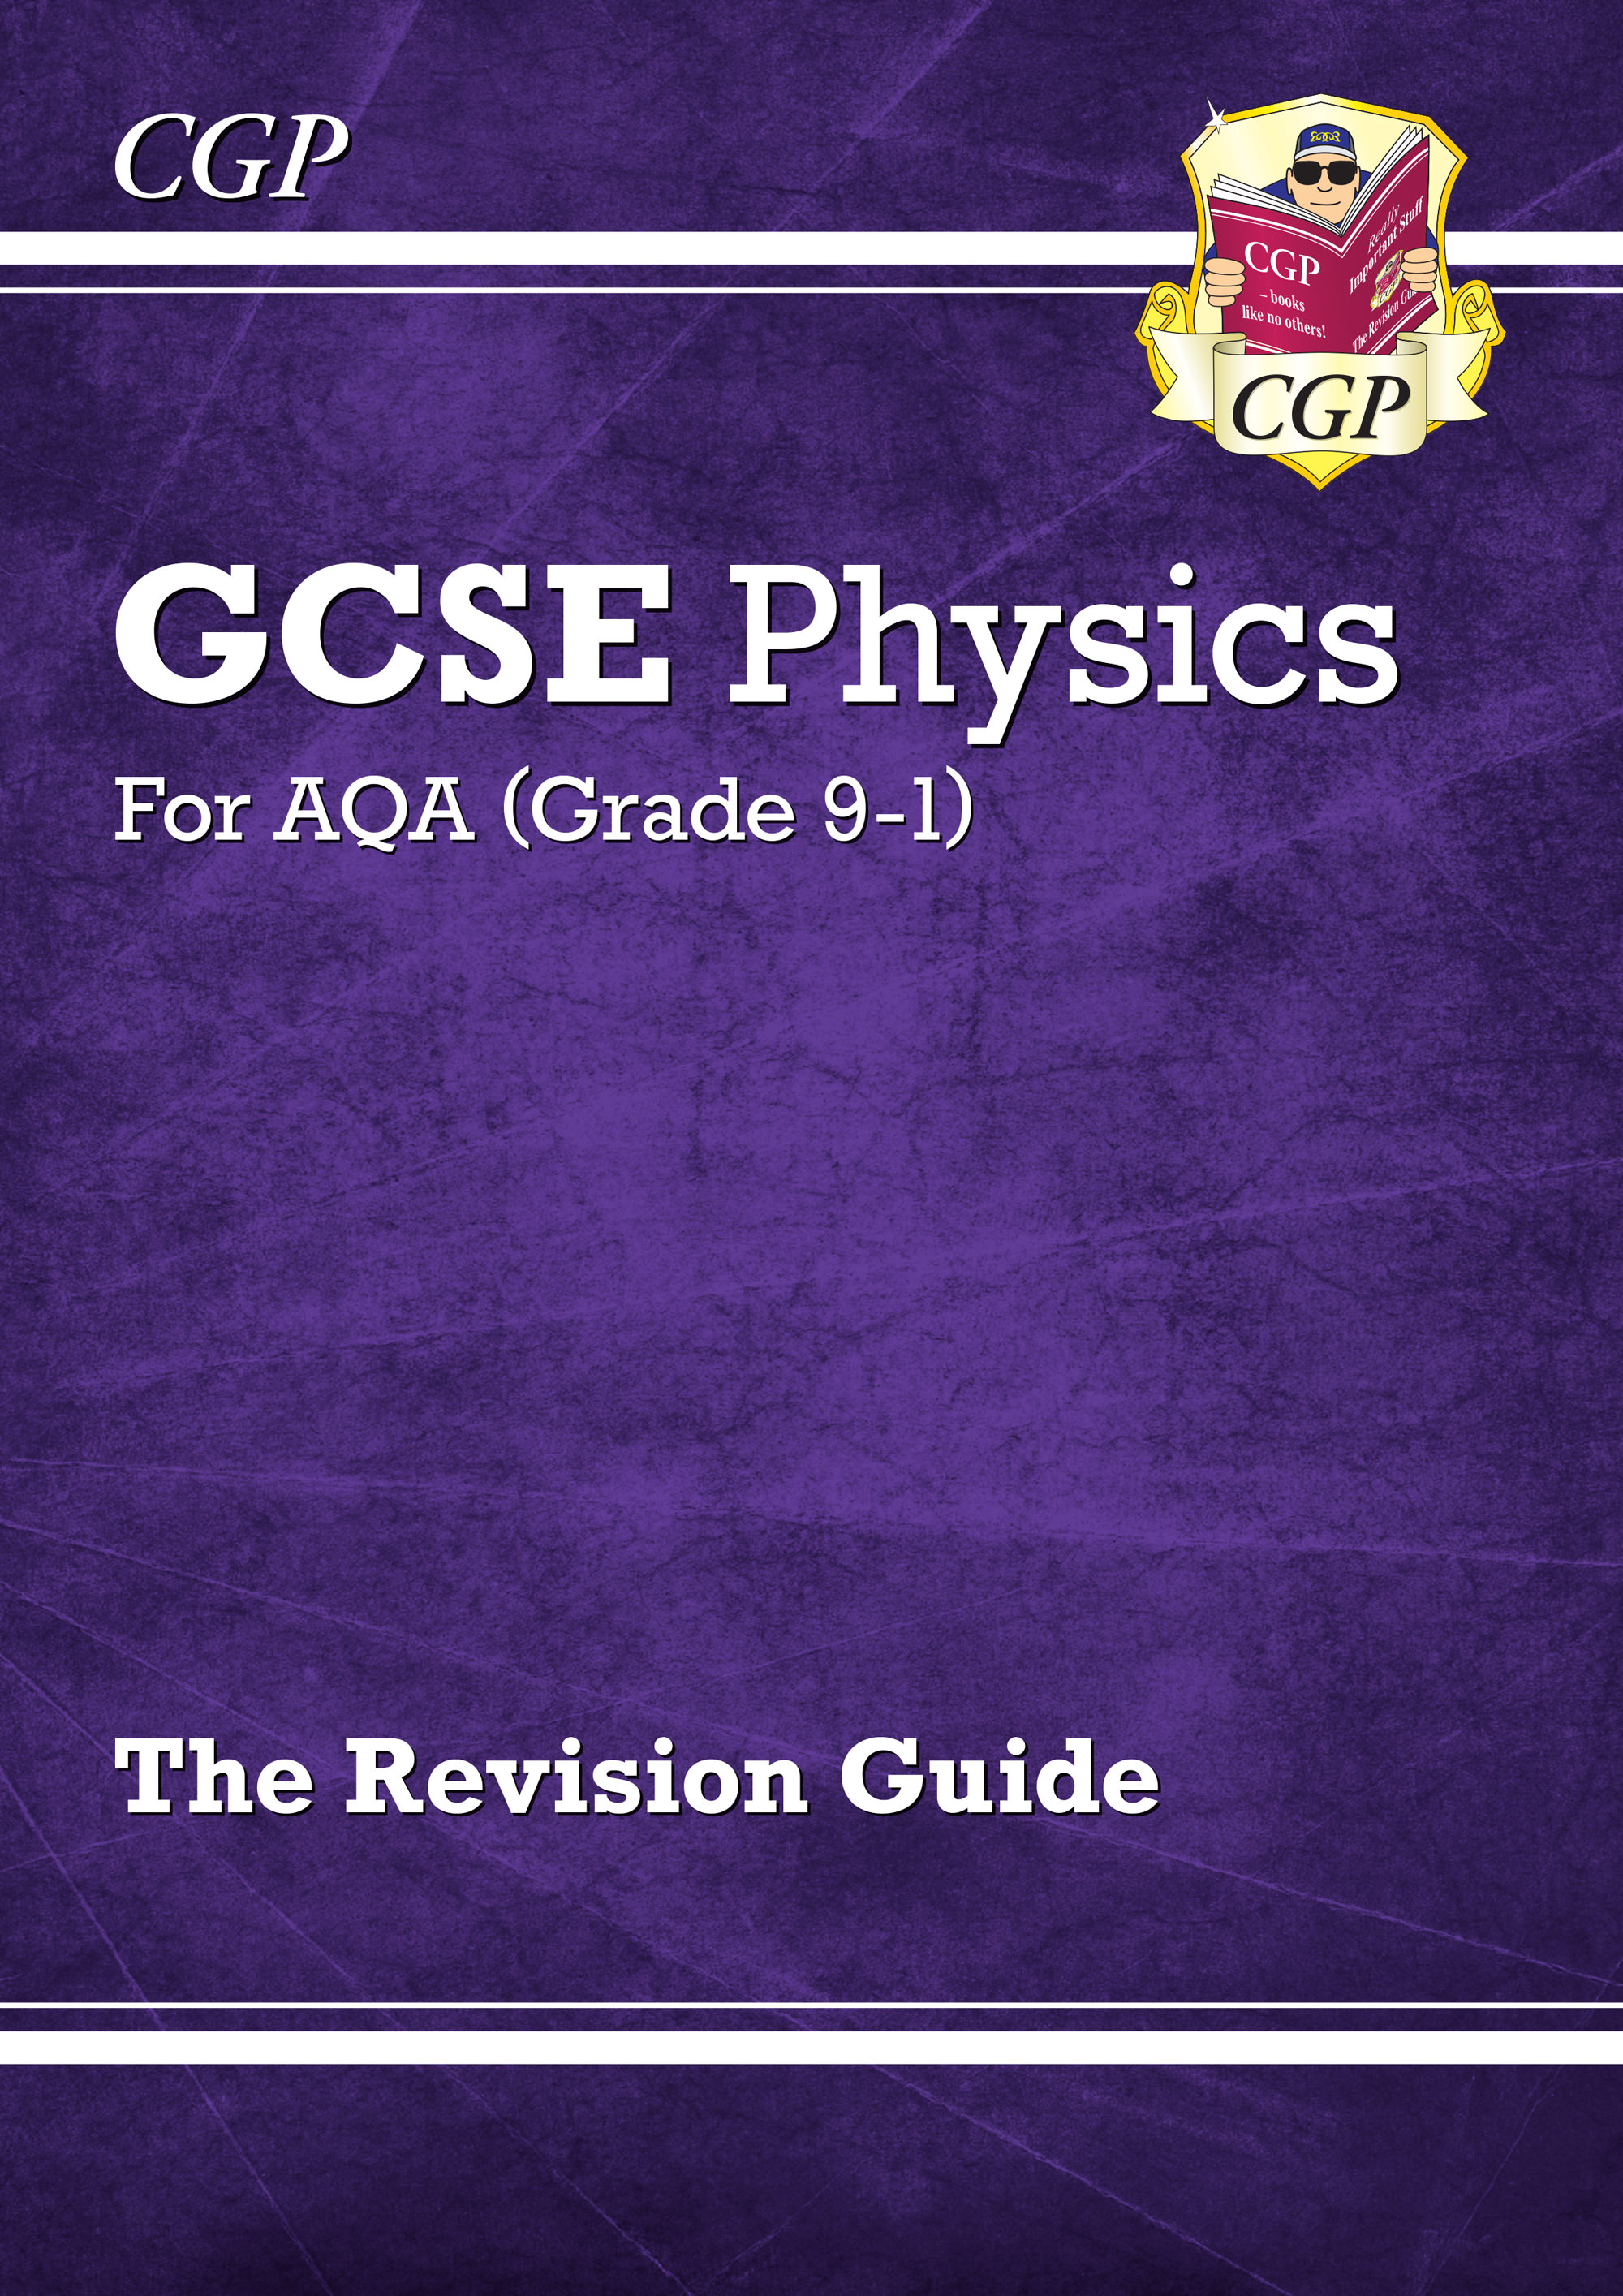 PAR47D - Grade 9-1 GCSE Physics: AQA Revision Guide - Higher (Online Edition)